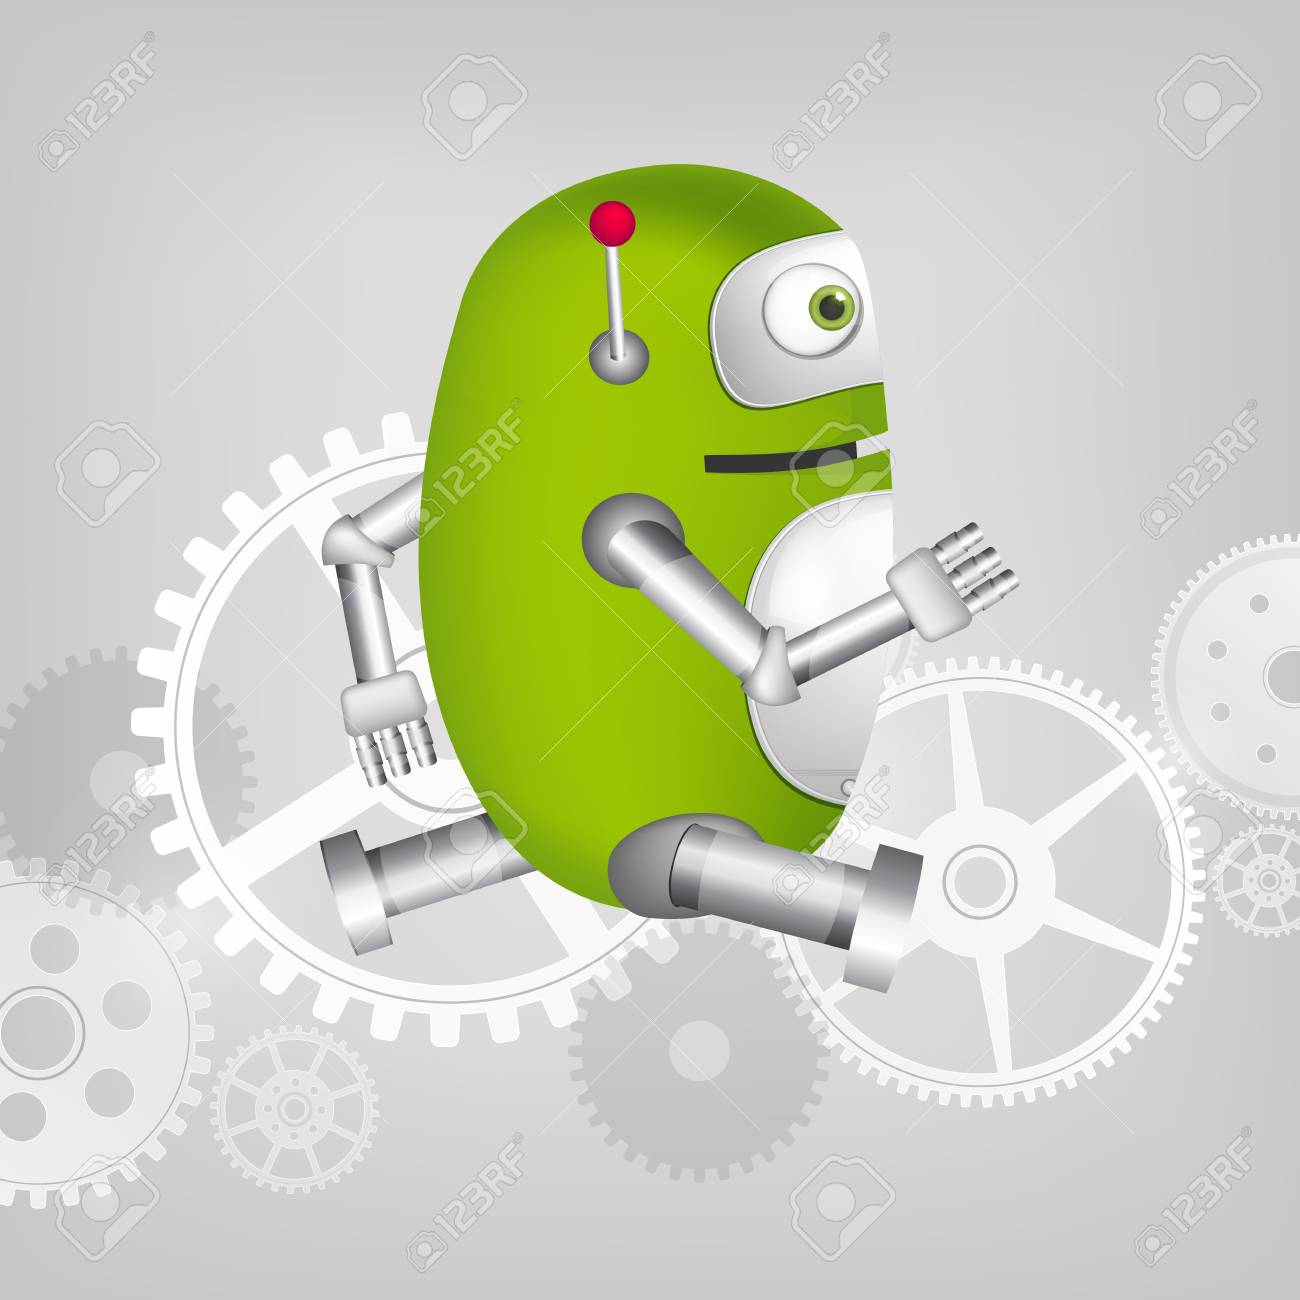 Green Robot Stock Vector - 20070234